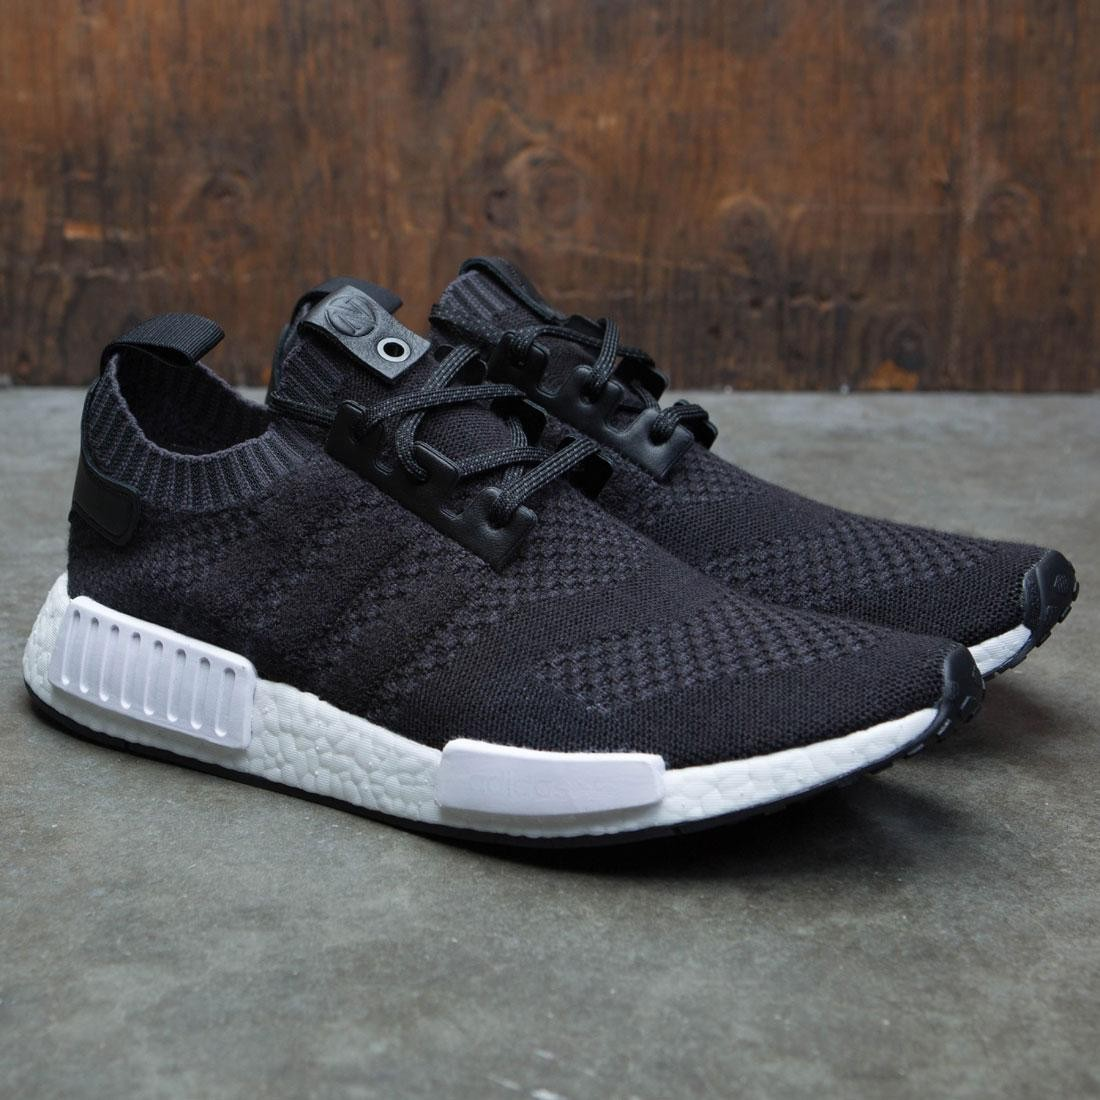 2a26aa7835a63 Adidas Consortium x A Ma Maniere x Invincible Men NMD R1 Sneaker Exchange  (black   night grey)